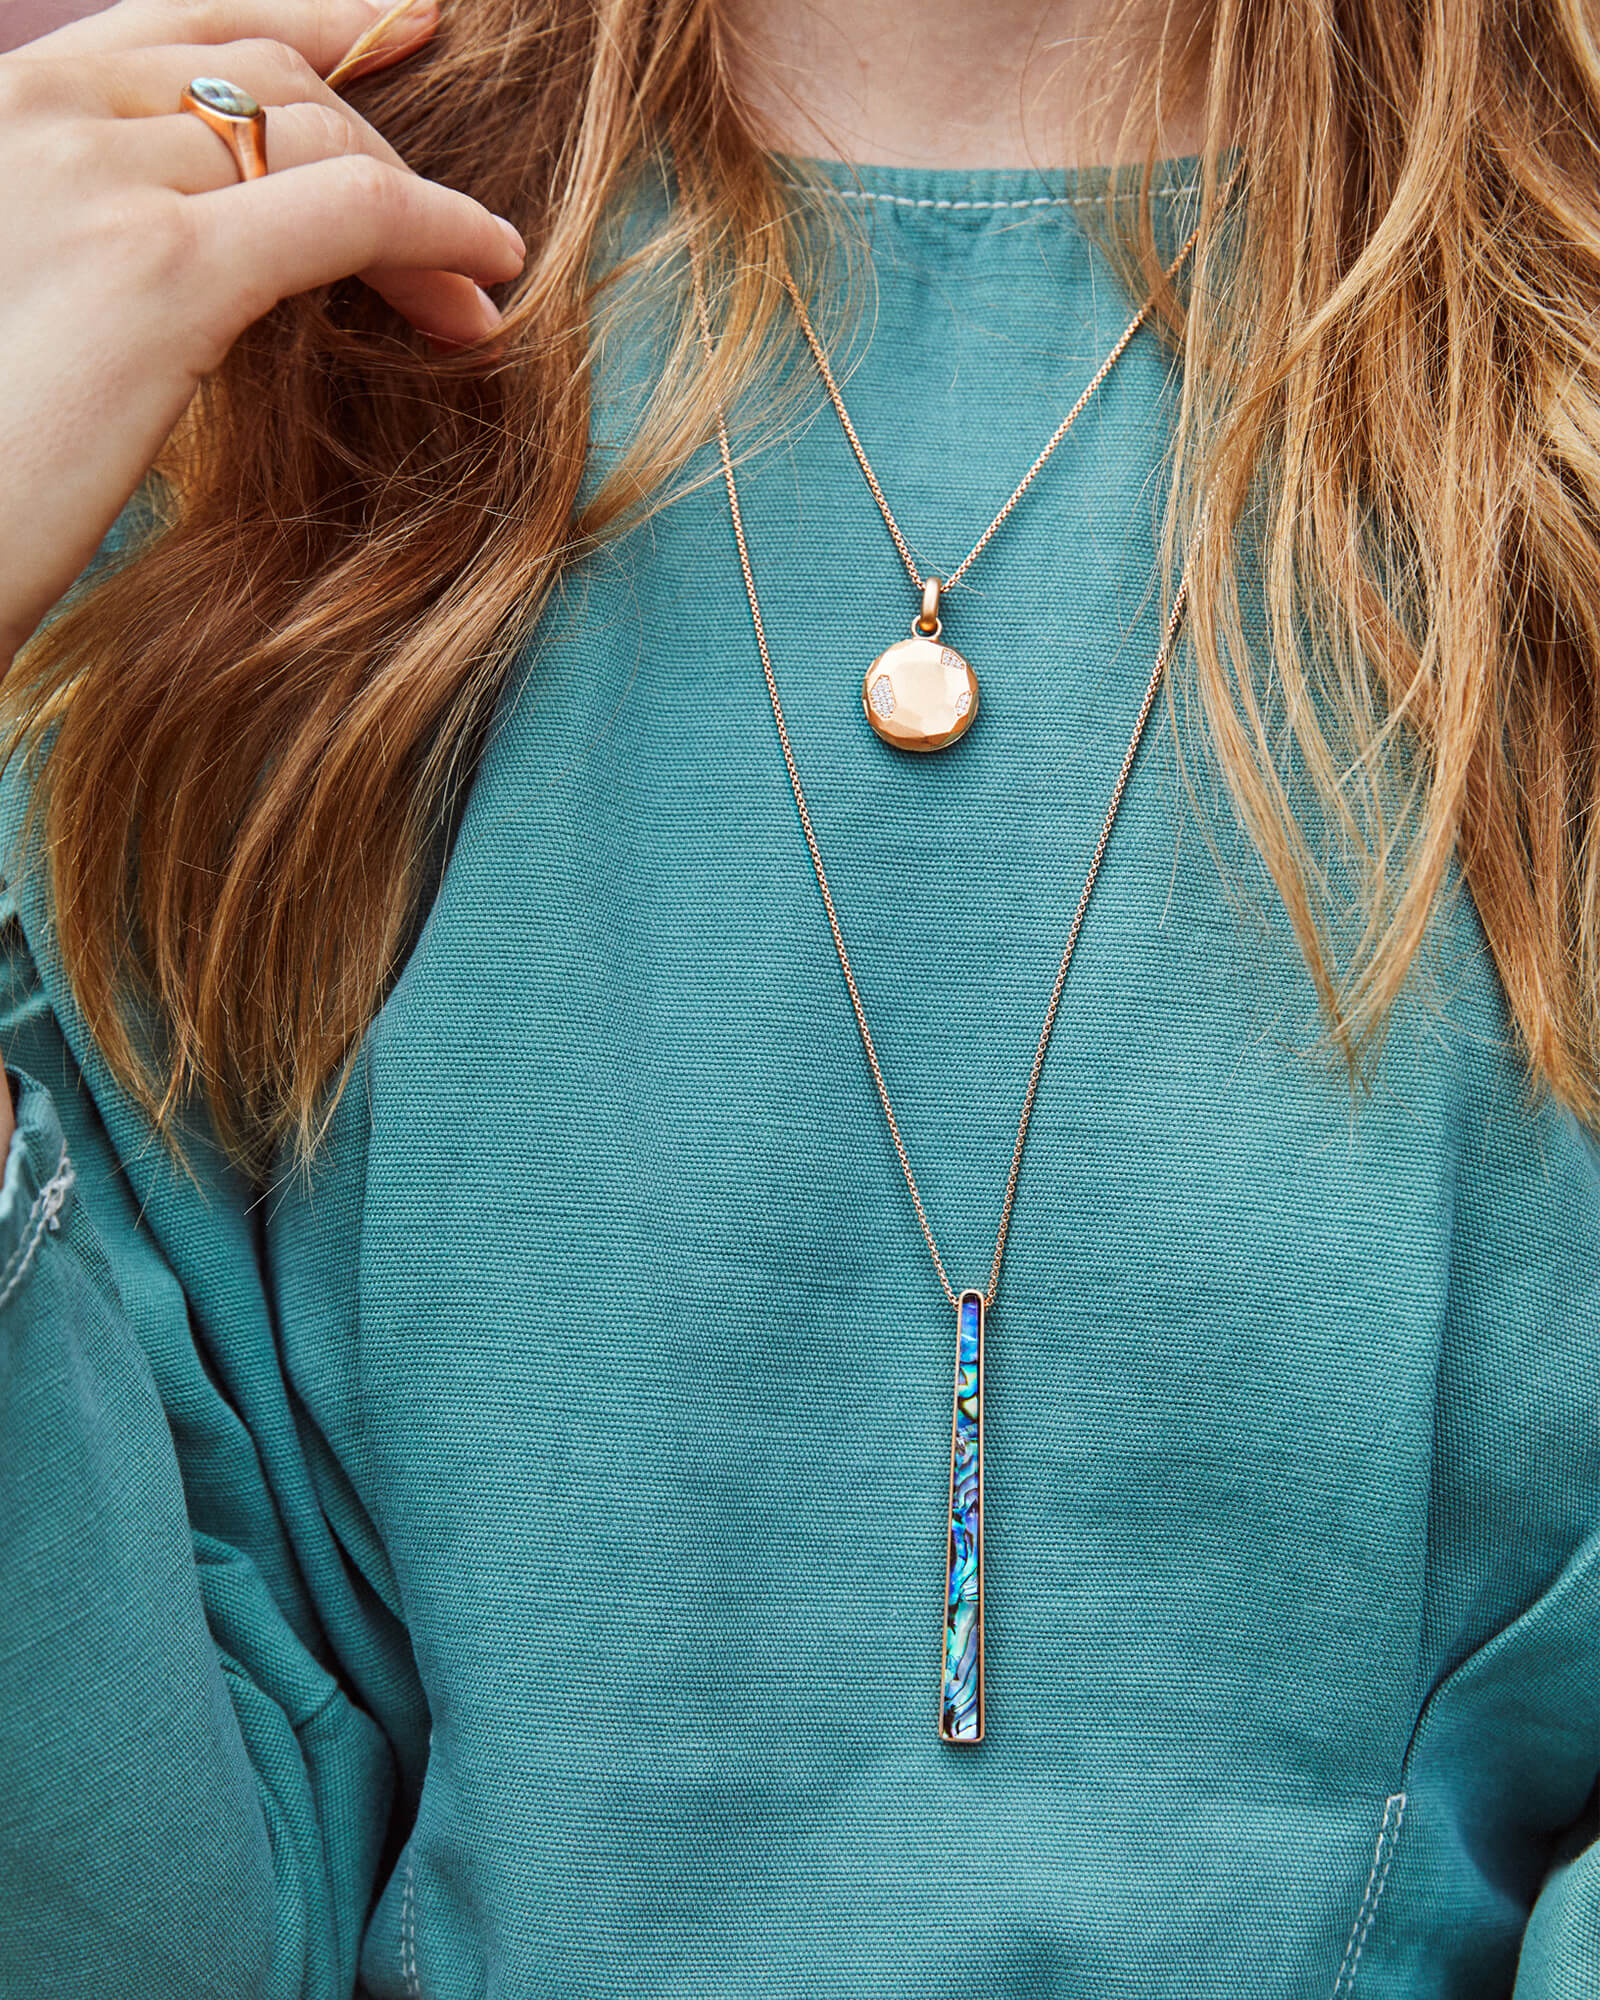 Baleigh Bright Silver Long Pendant Necklace in Sky Blue Illusion